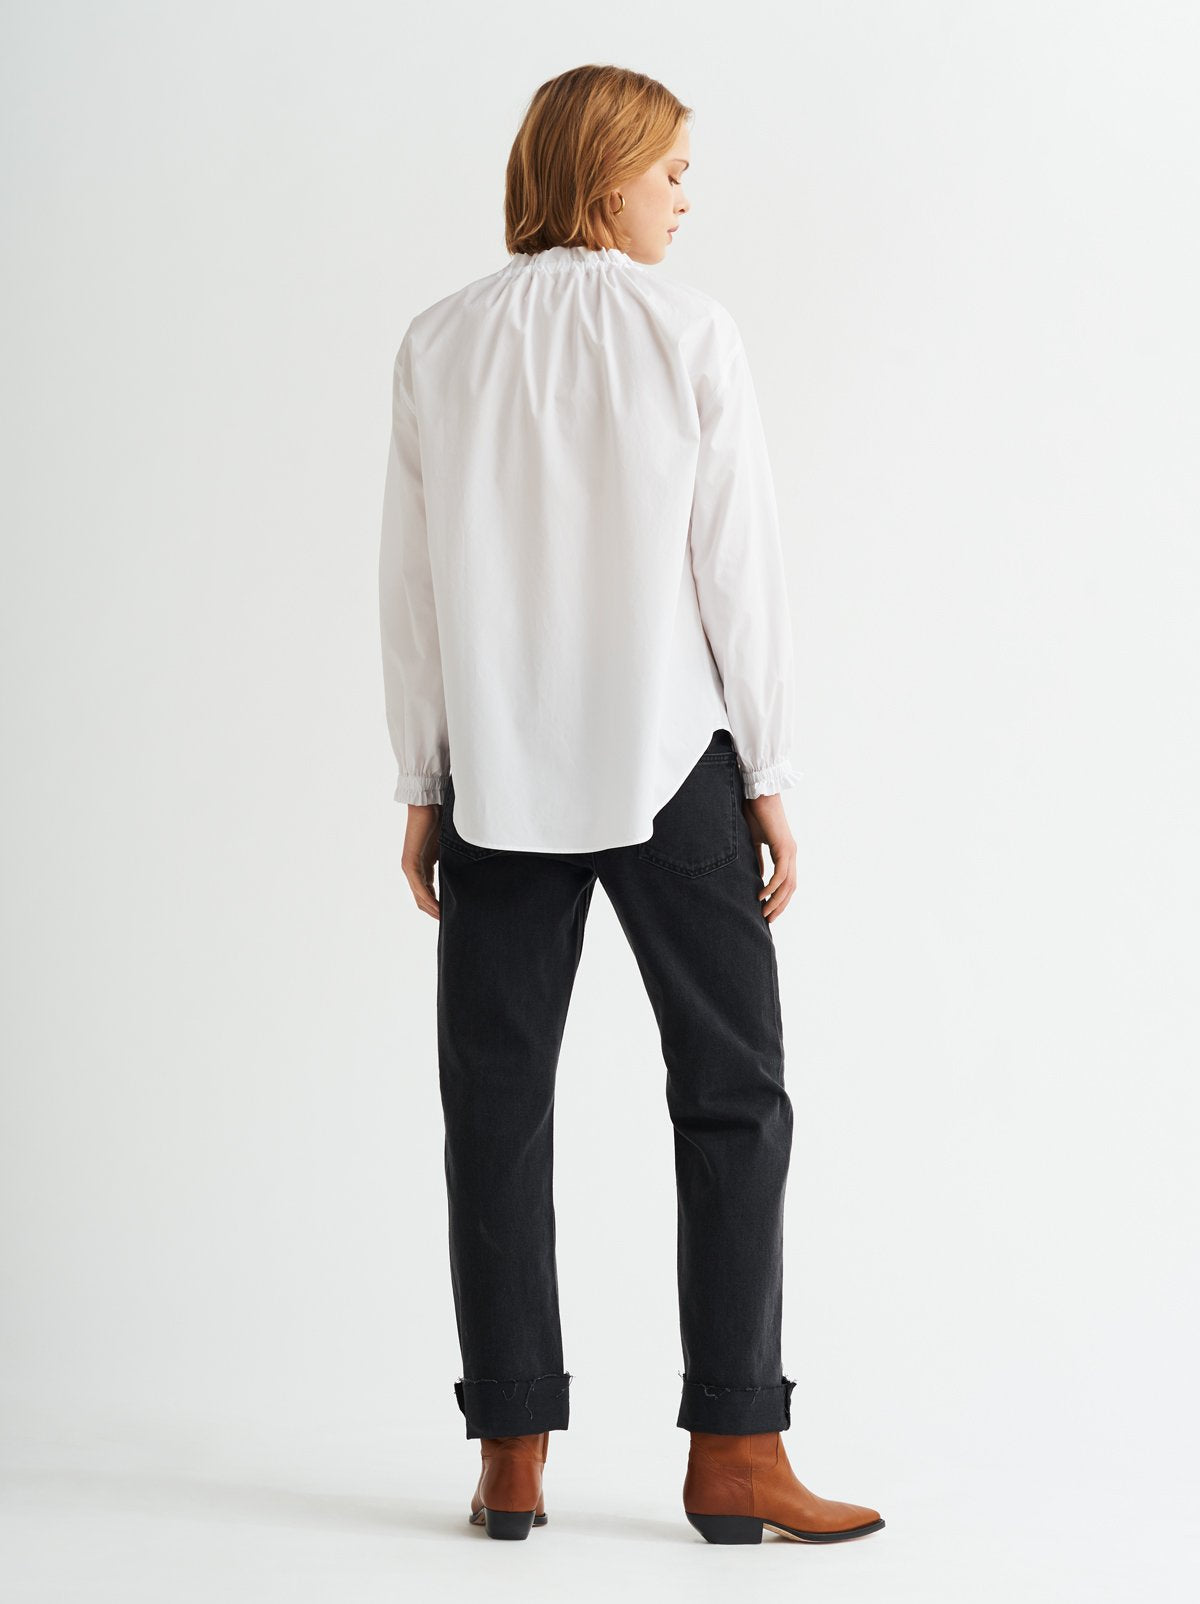 Lucinda White Gathered Neck Cotton Shirt by KITRI Studio